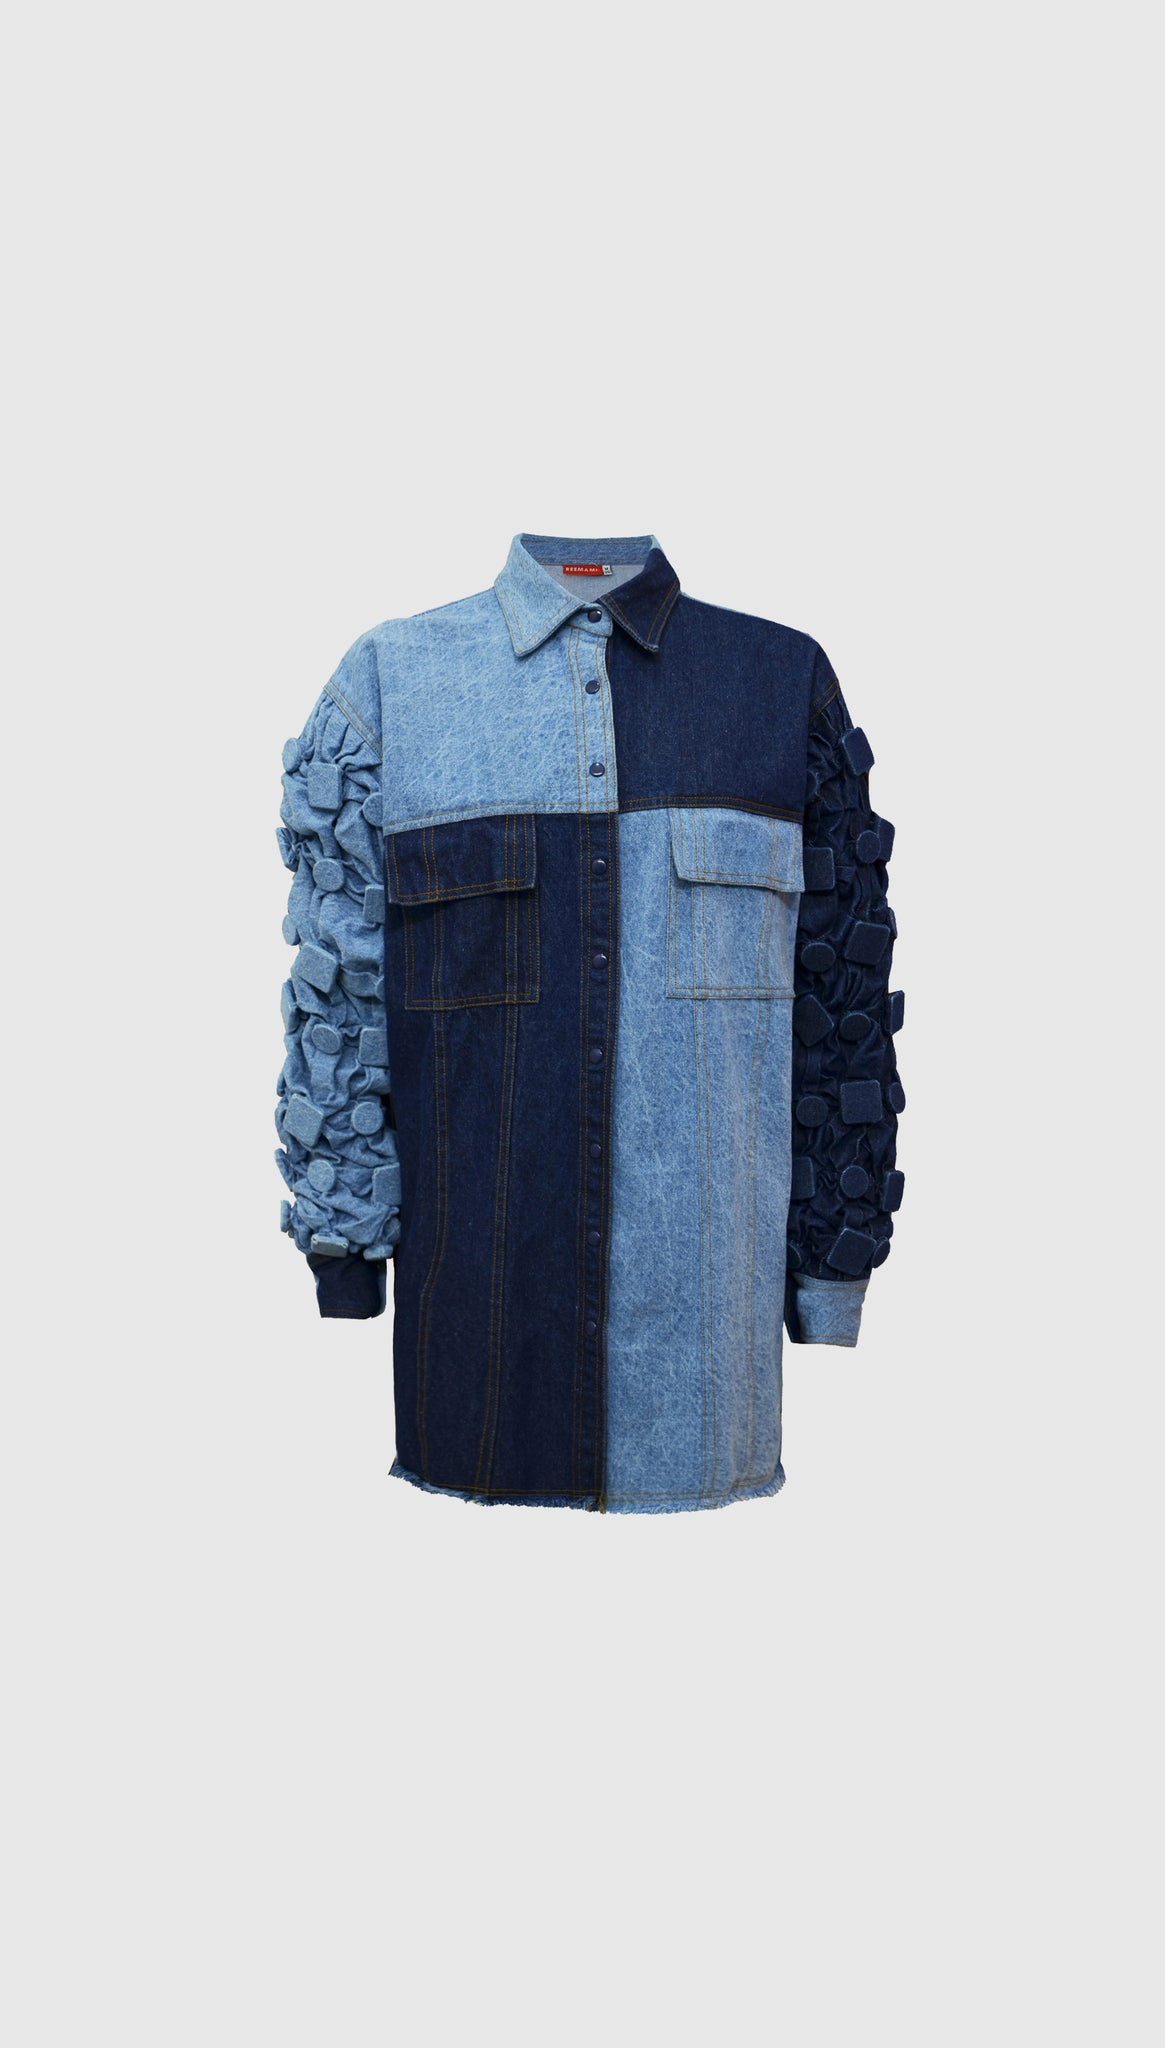 Mound Denim Jacket